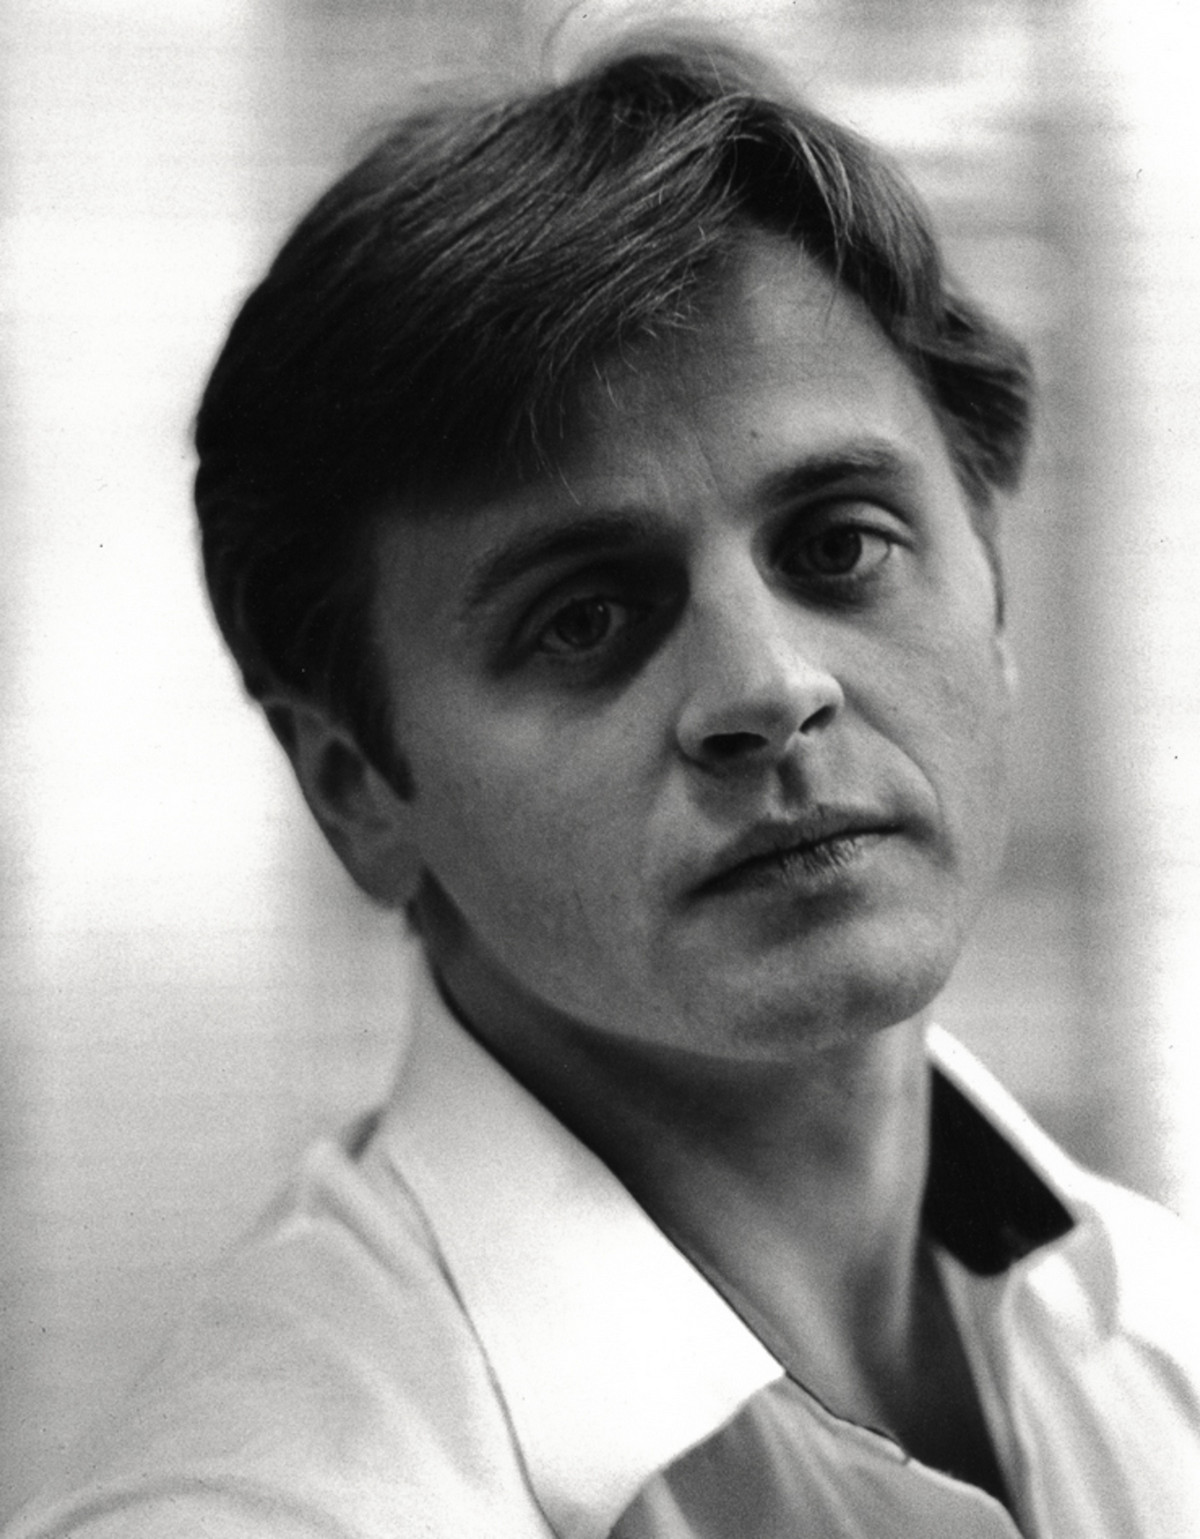 Ballet dancer Mikhail Baryshnikov in New York, 1979.